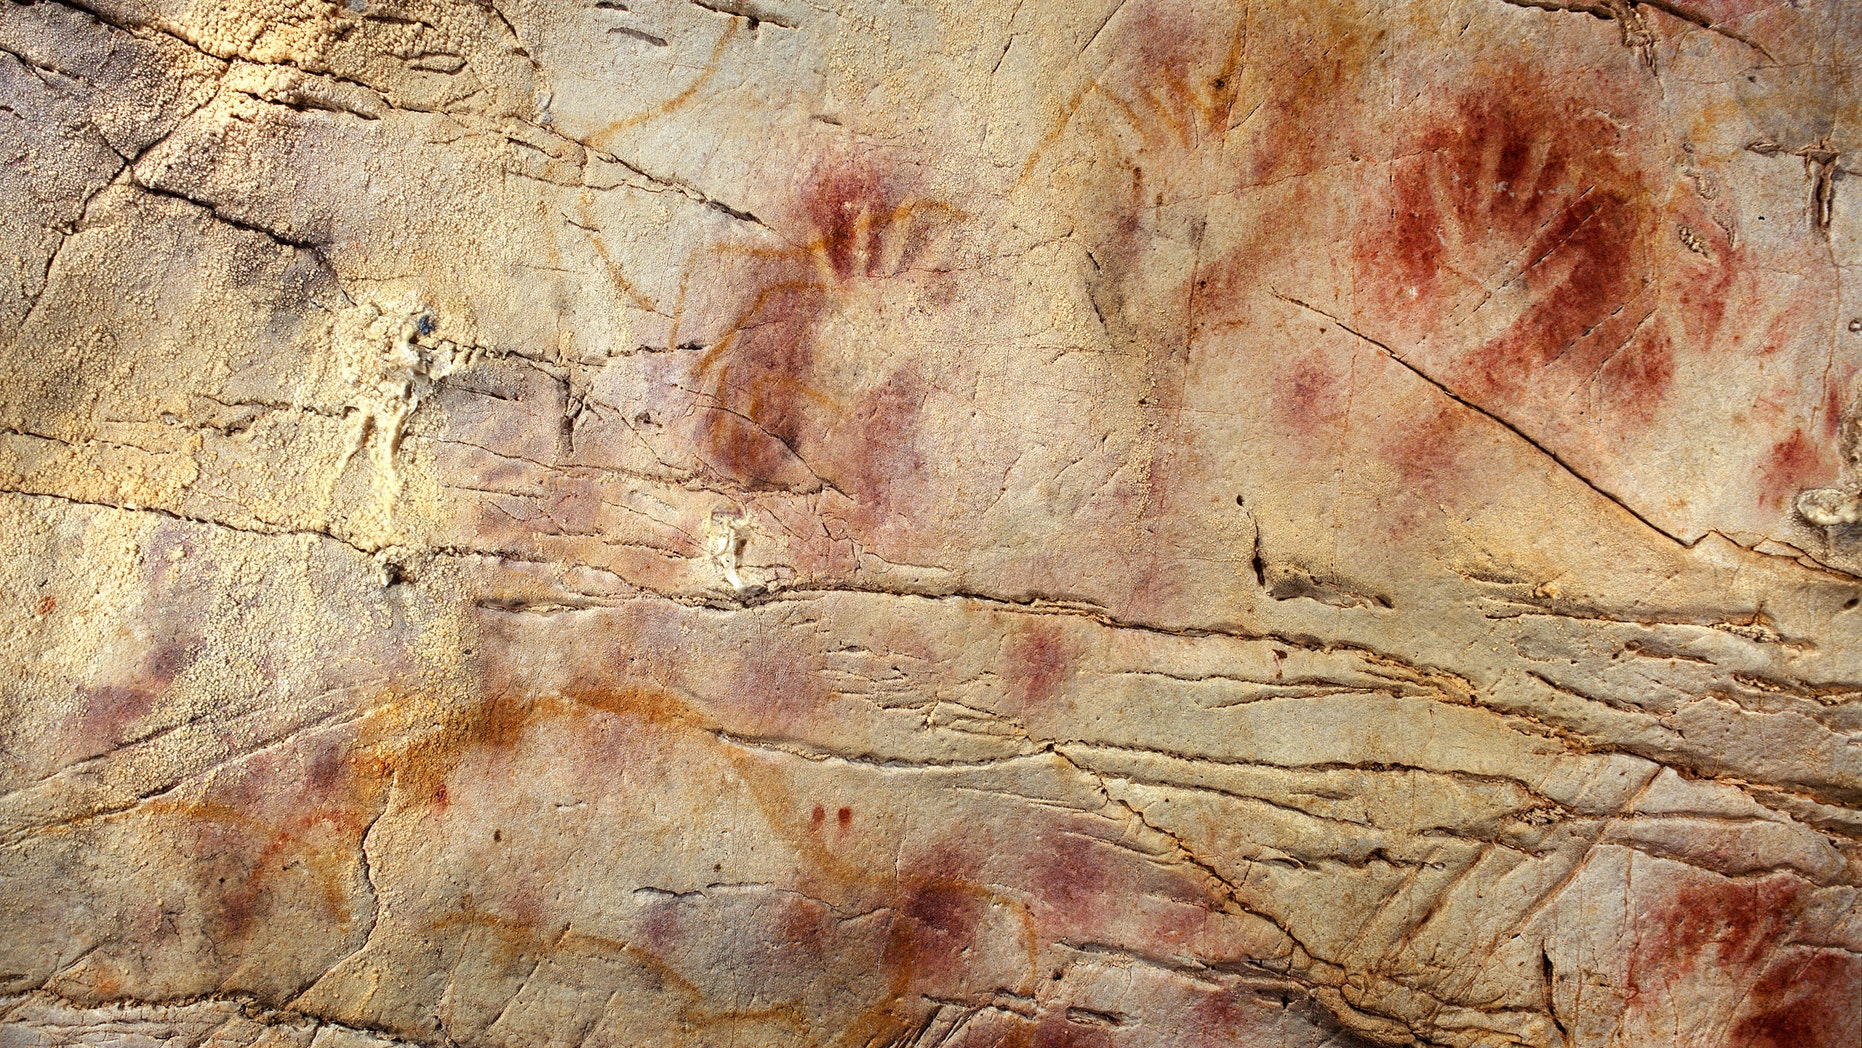 This undated photo shows detail of the Panel of Hands, El Castillo Cave showing red disks and hand stencils made by blowing or spitting paint onto the wall.